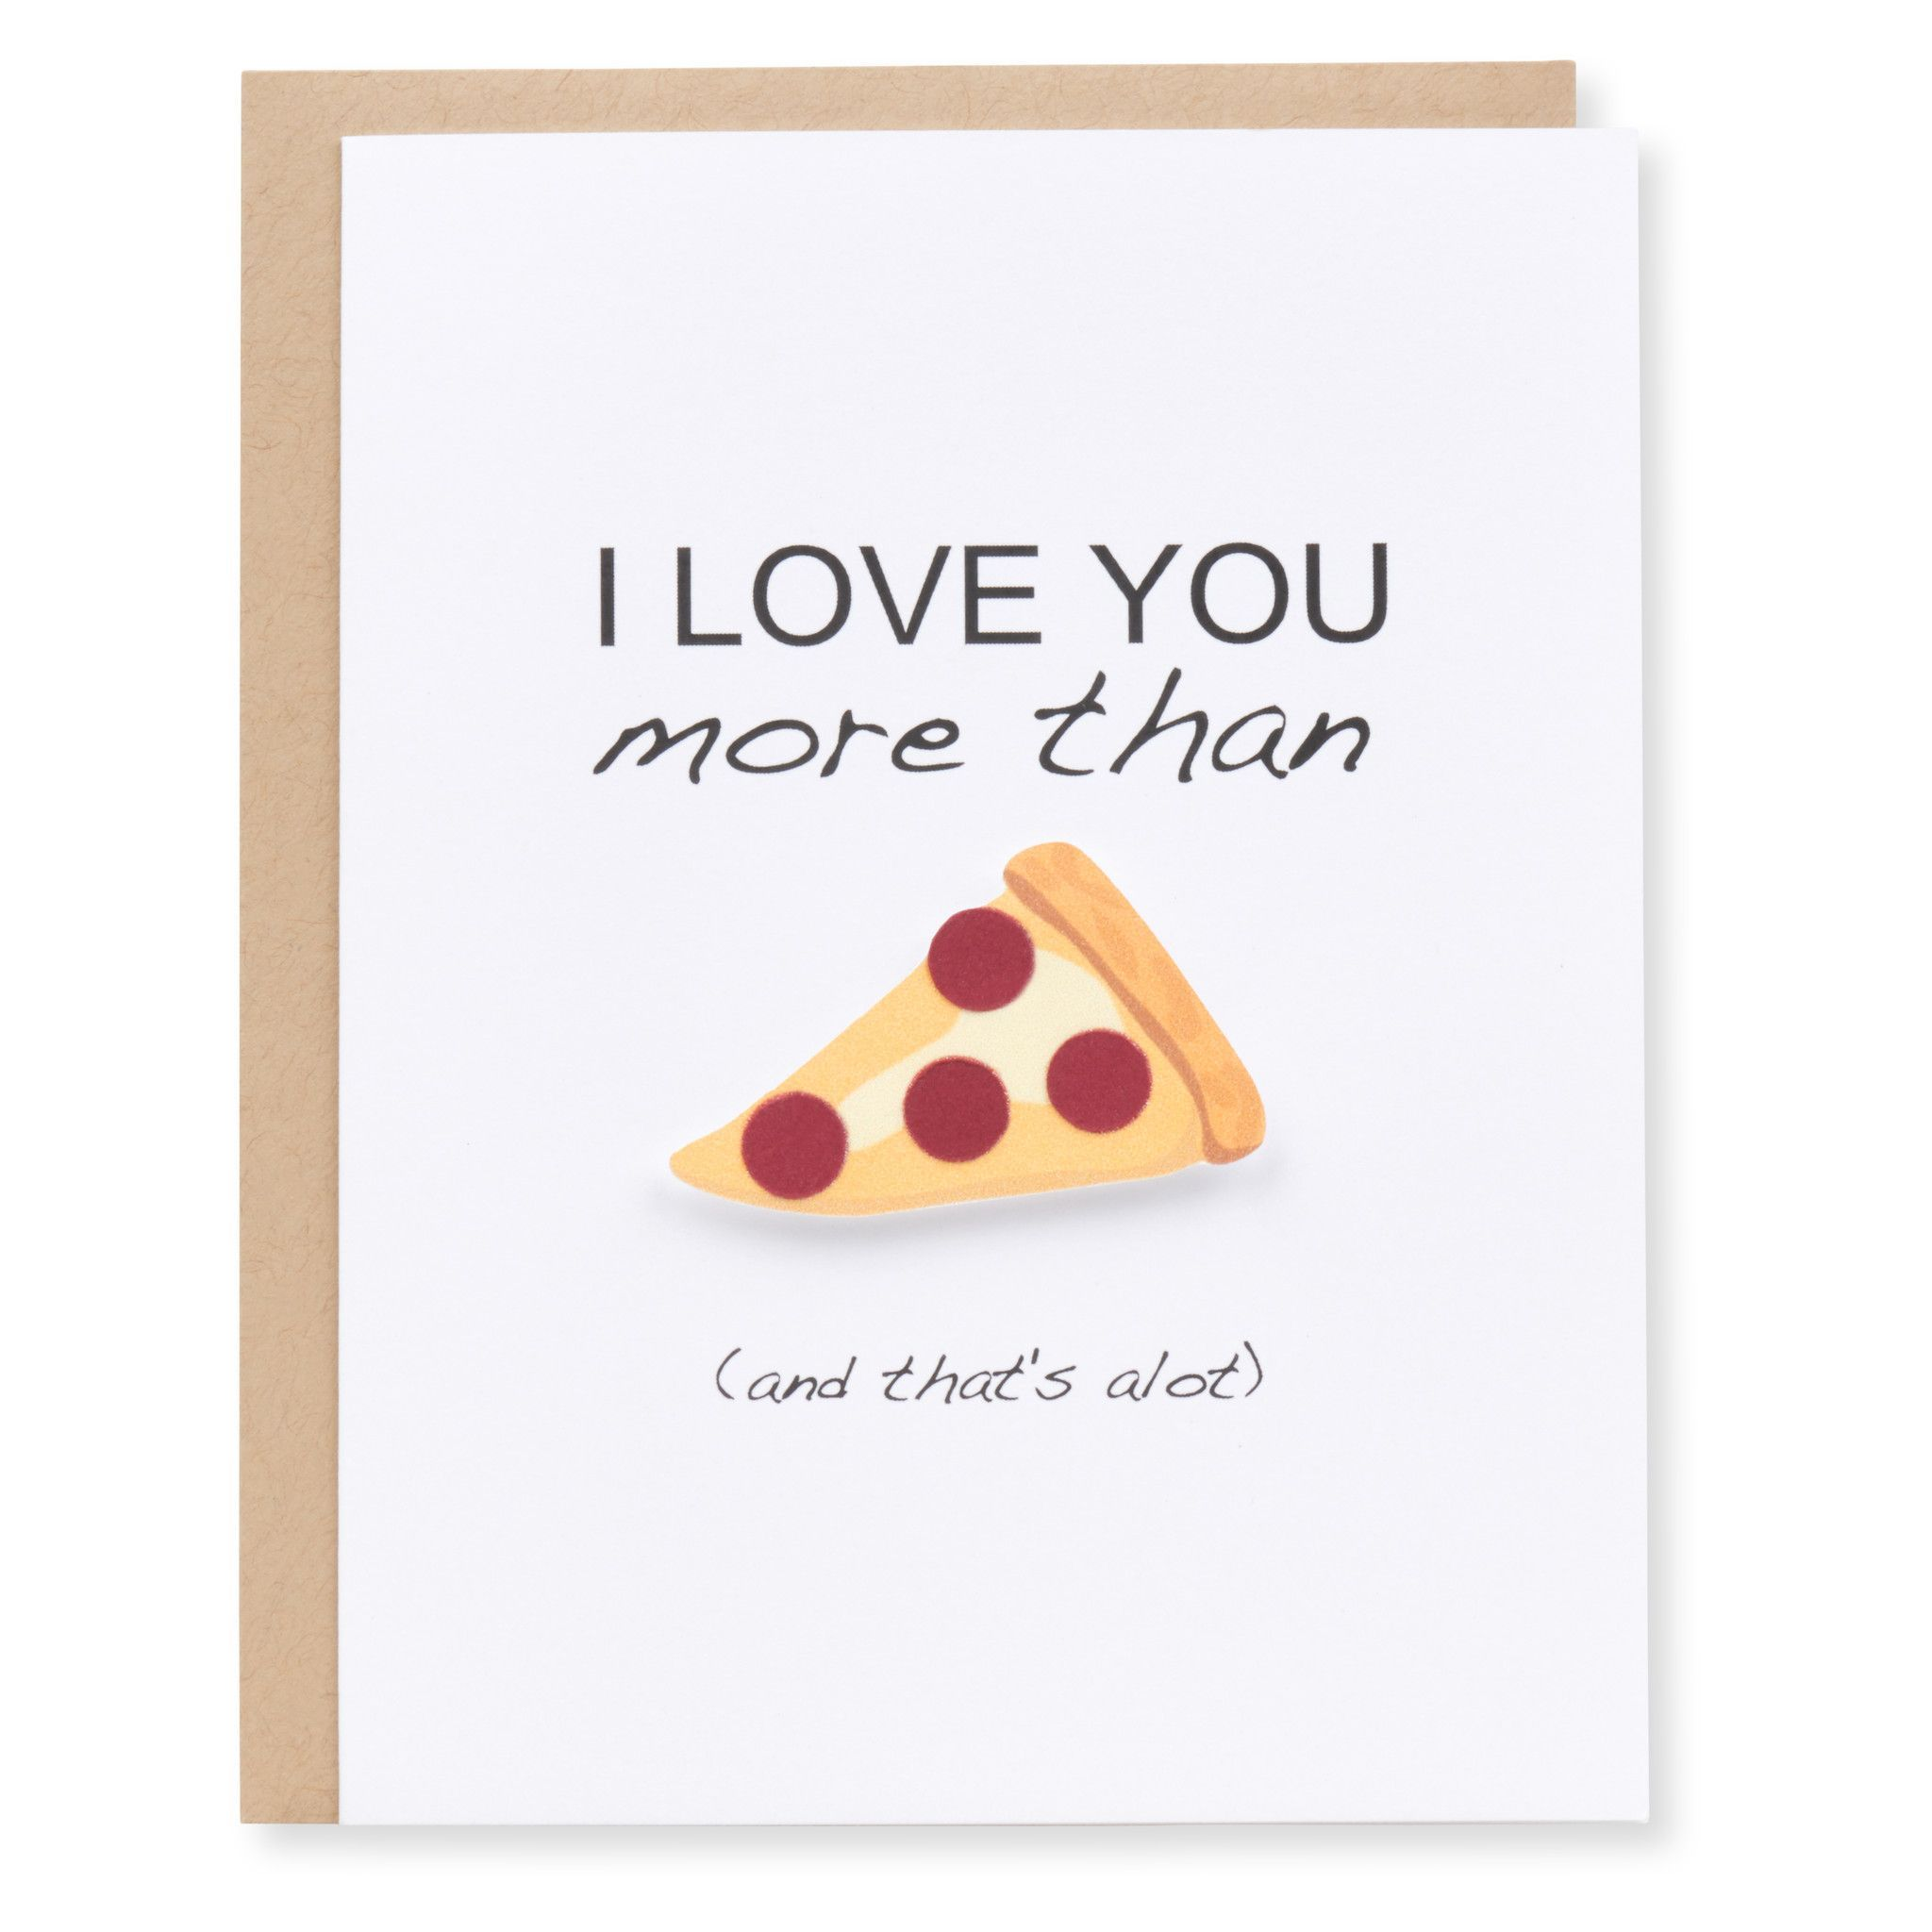 14 Valentines Day Cards For Your Best Friend – Funny Best Friend Valentines Day Cards